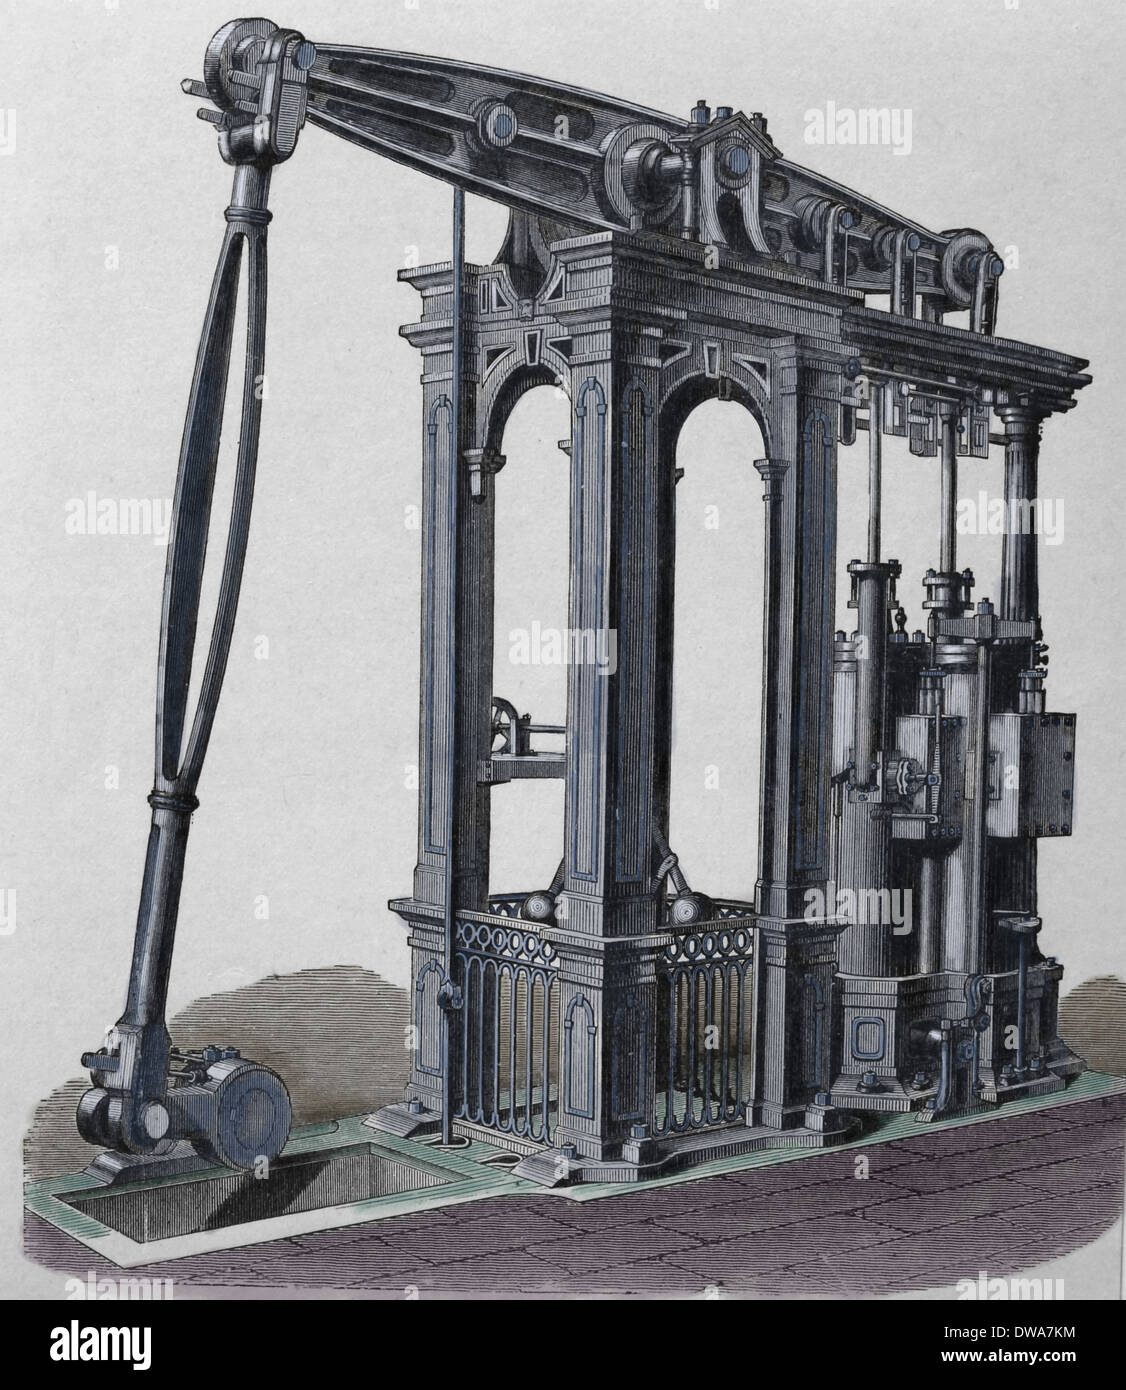 Steam engine by Cornish engineer Arthur Woolf (1766-1837). Engraving, 19th century. (Later colouration). - Stock Image